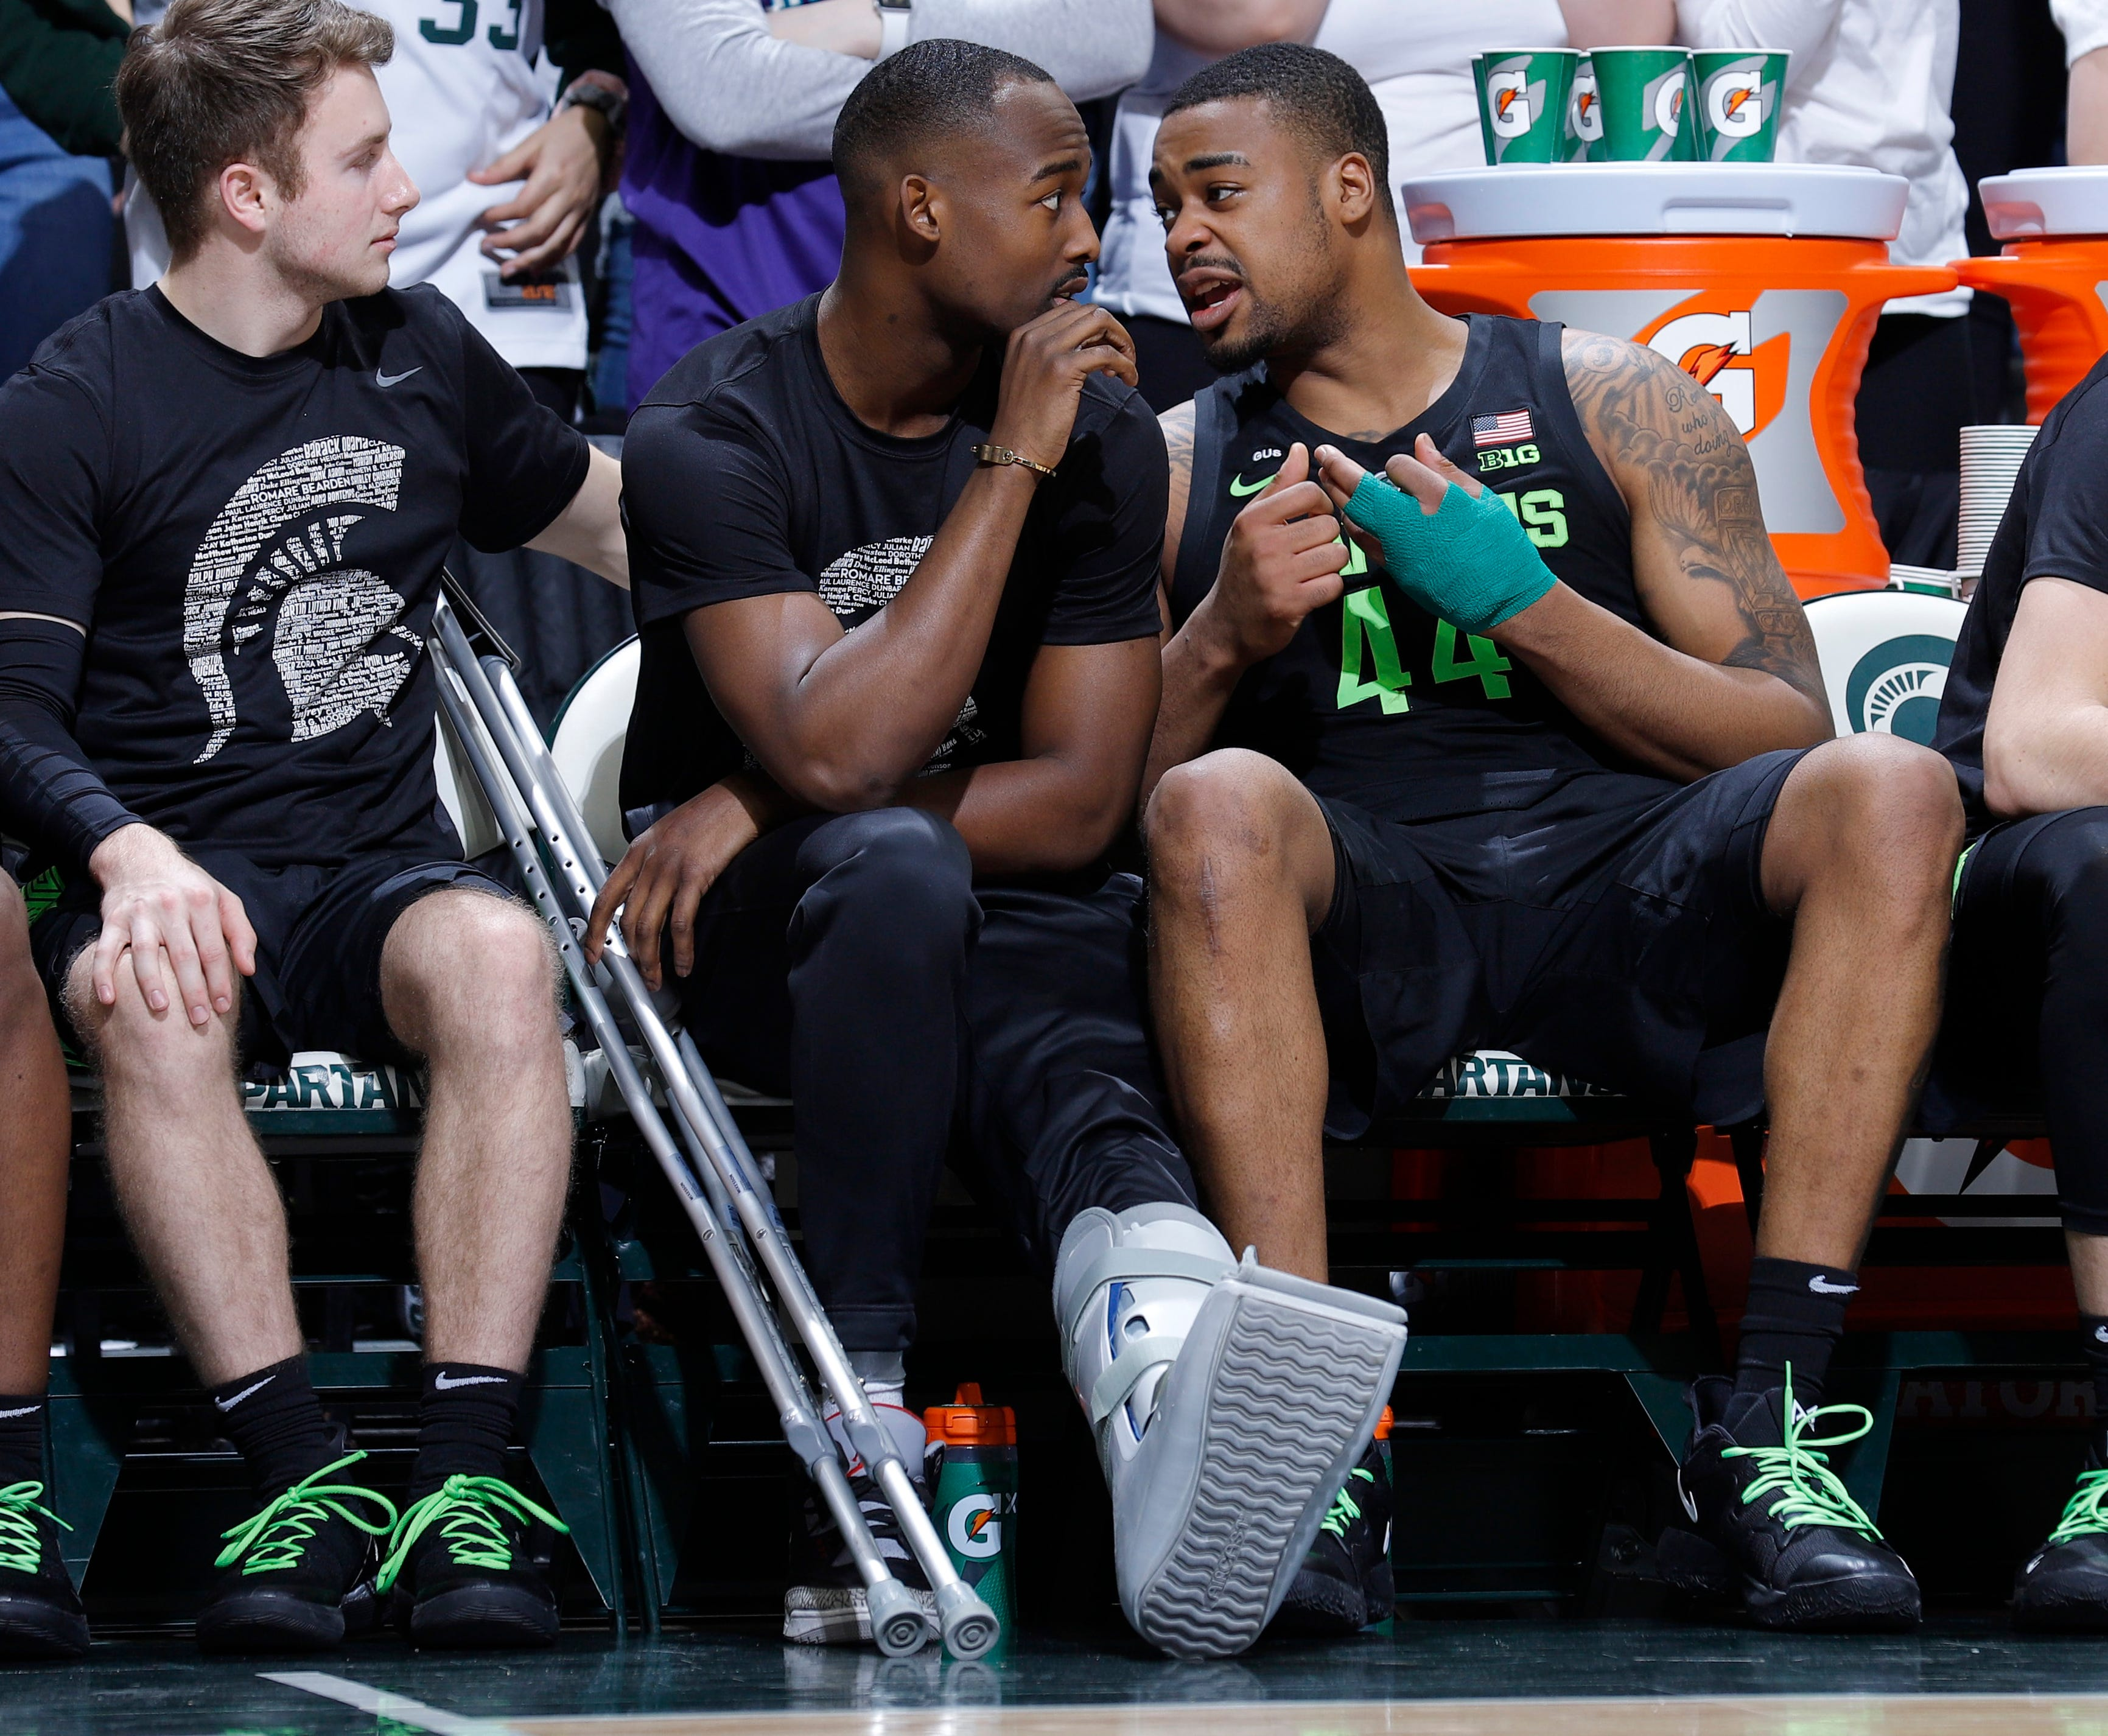 Michigan State's Nick Ward, right, talks with Joshua Langford while on the bench during the second half of his team's game against Ohio State.